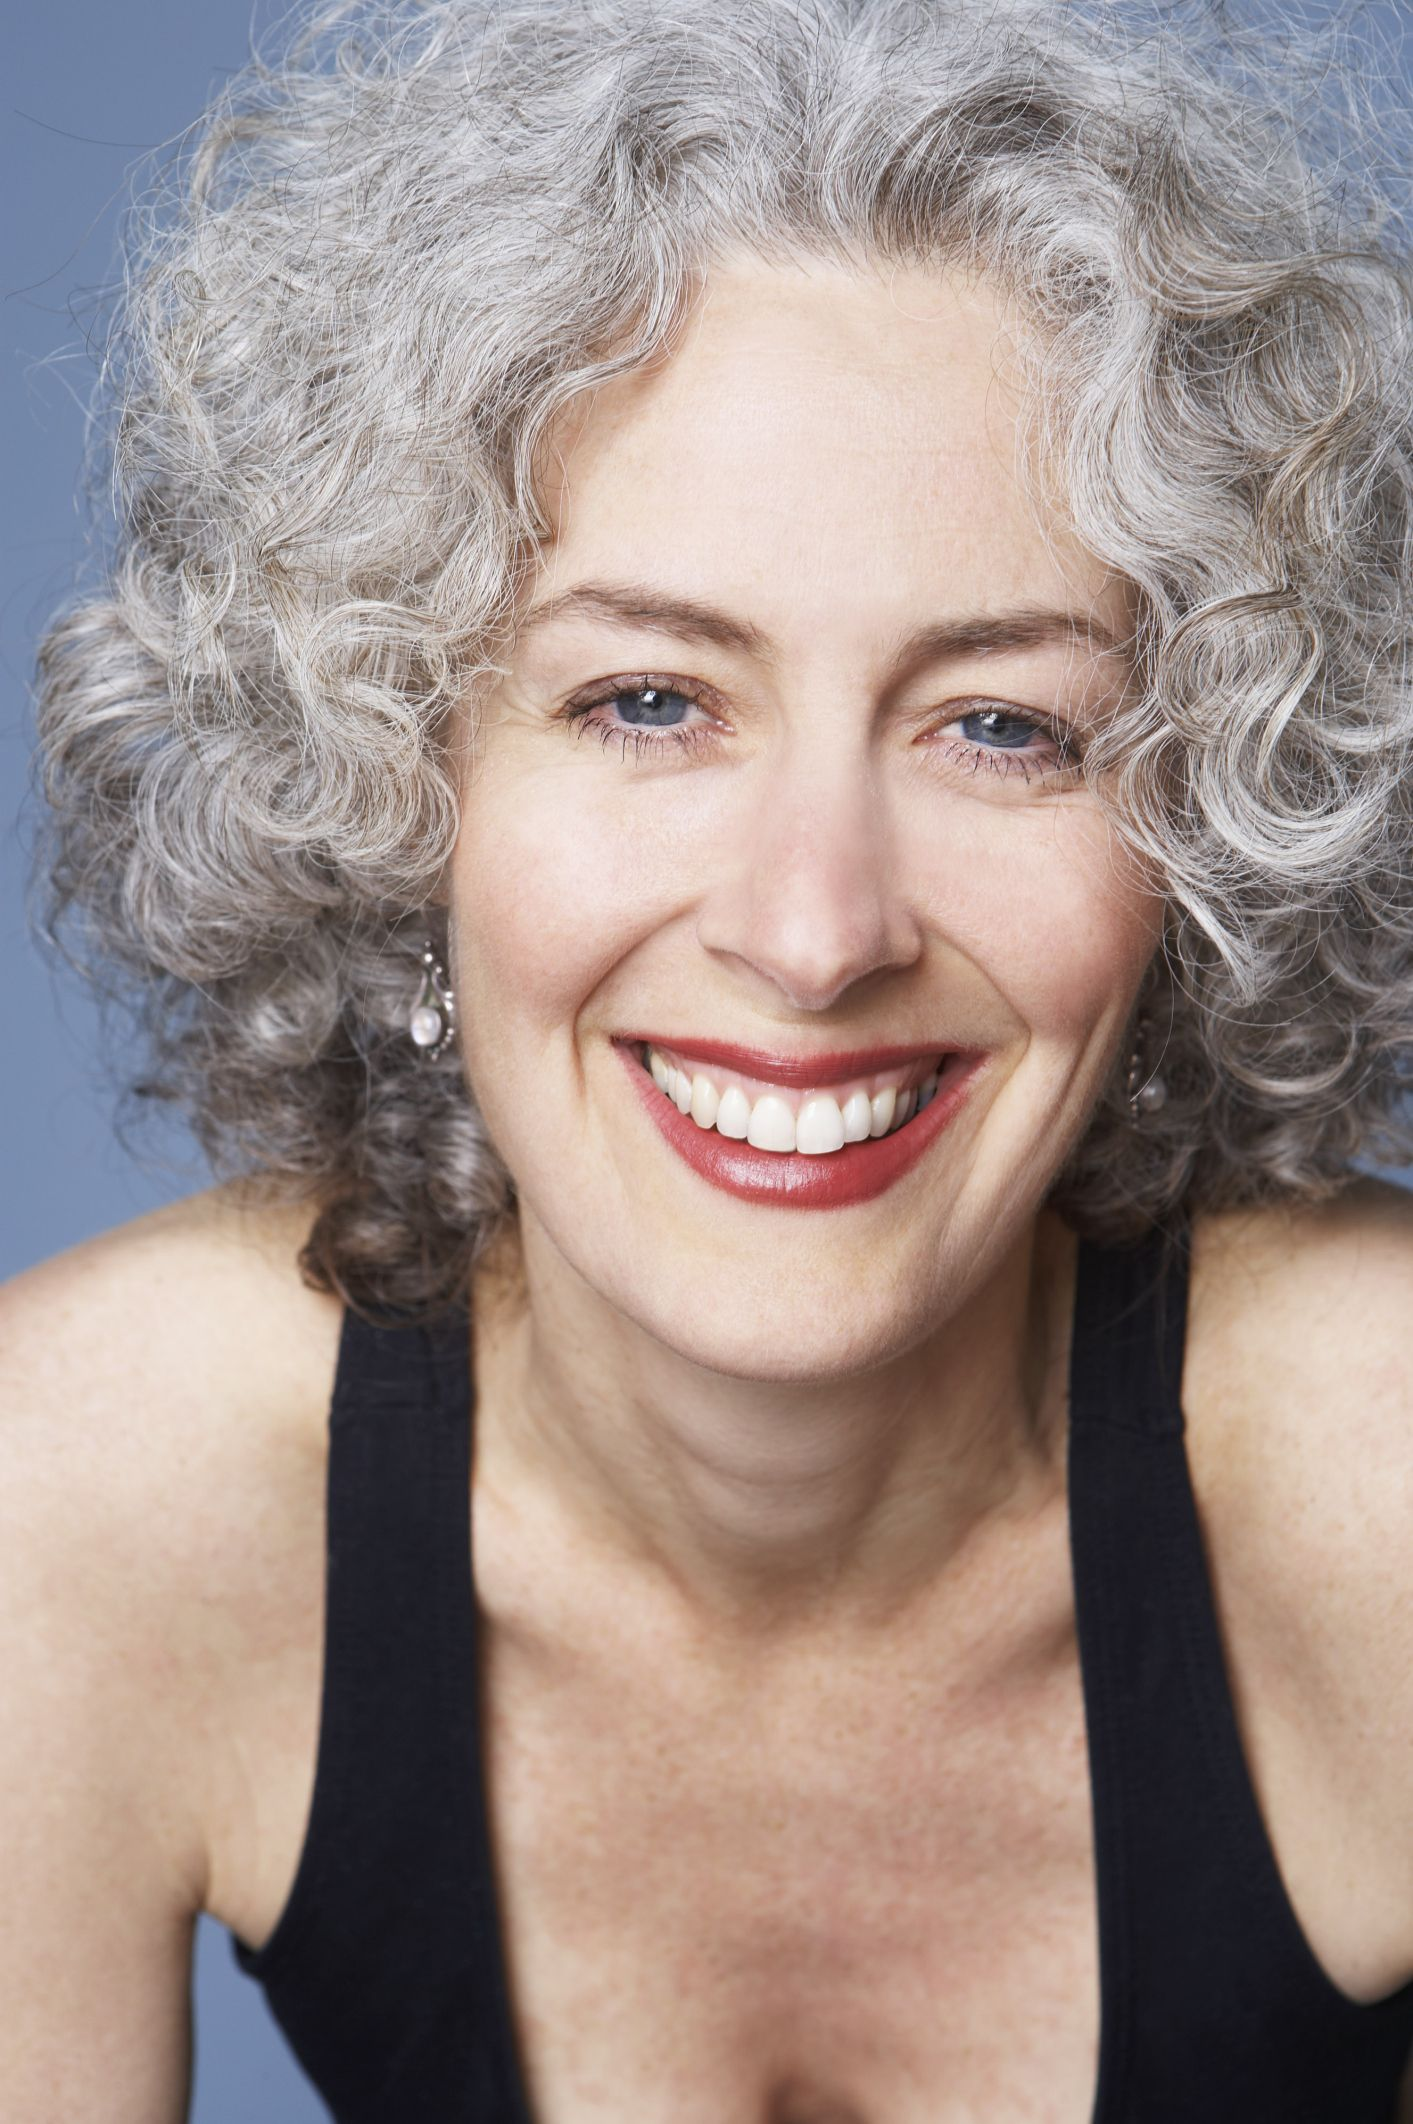 Exercises for lines grey curly hair older